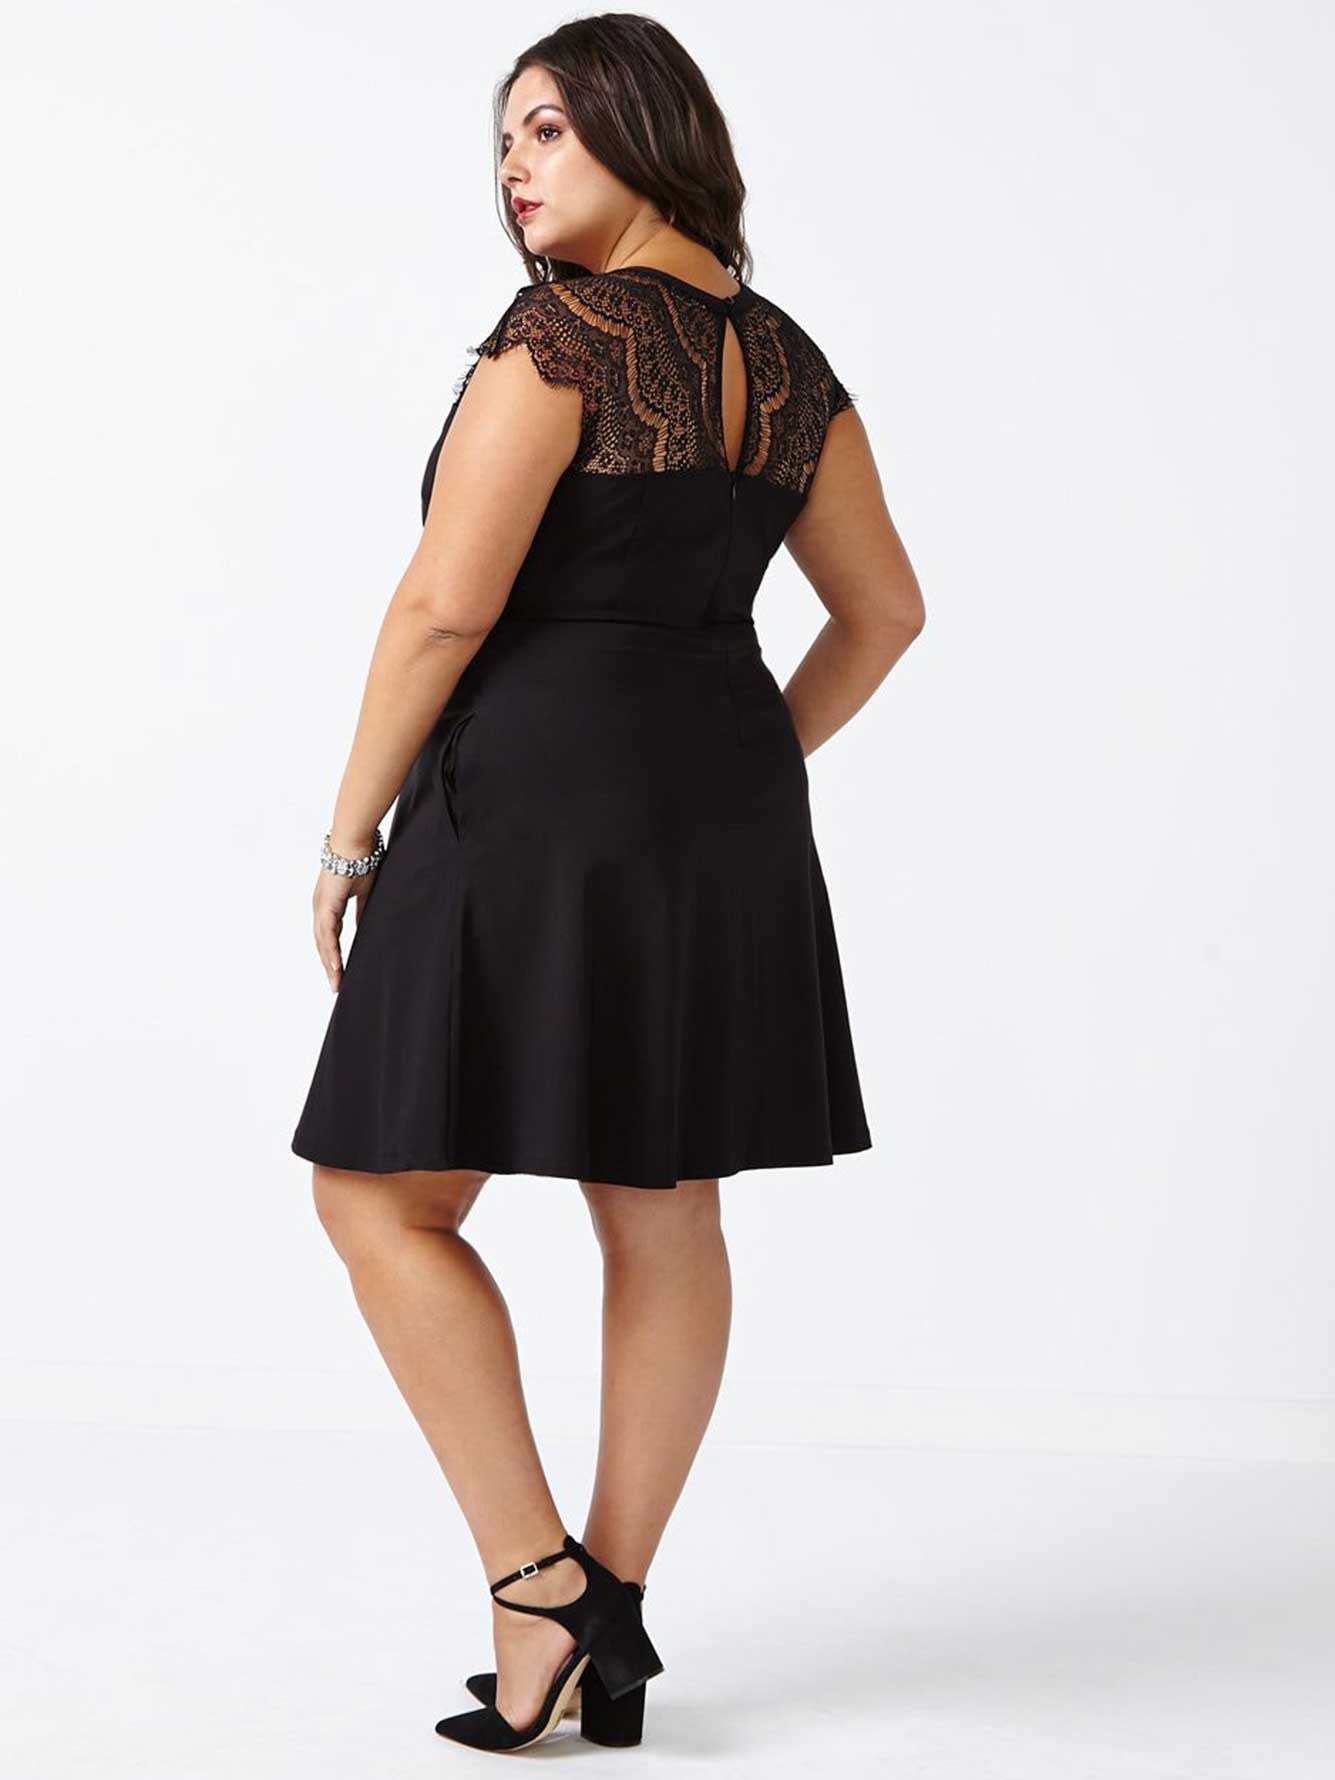 a5b3baeb9b Sleeveless Fit and Flare Dress with Lace | Penningtons